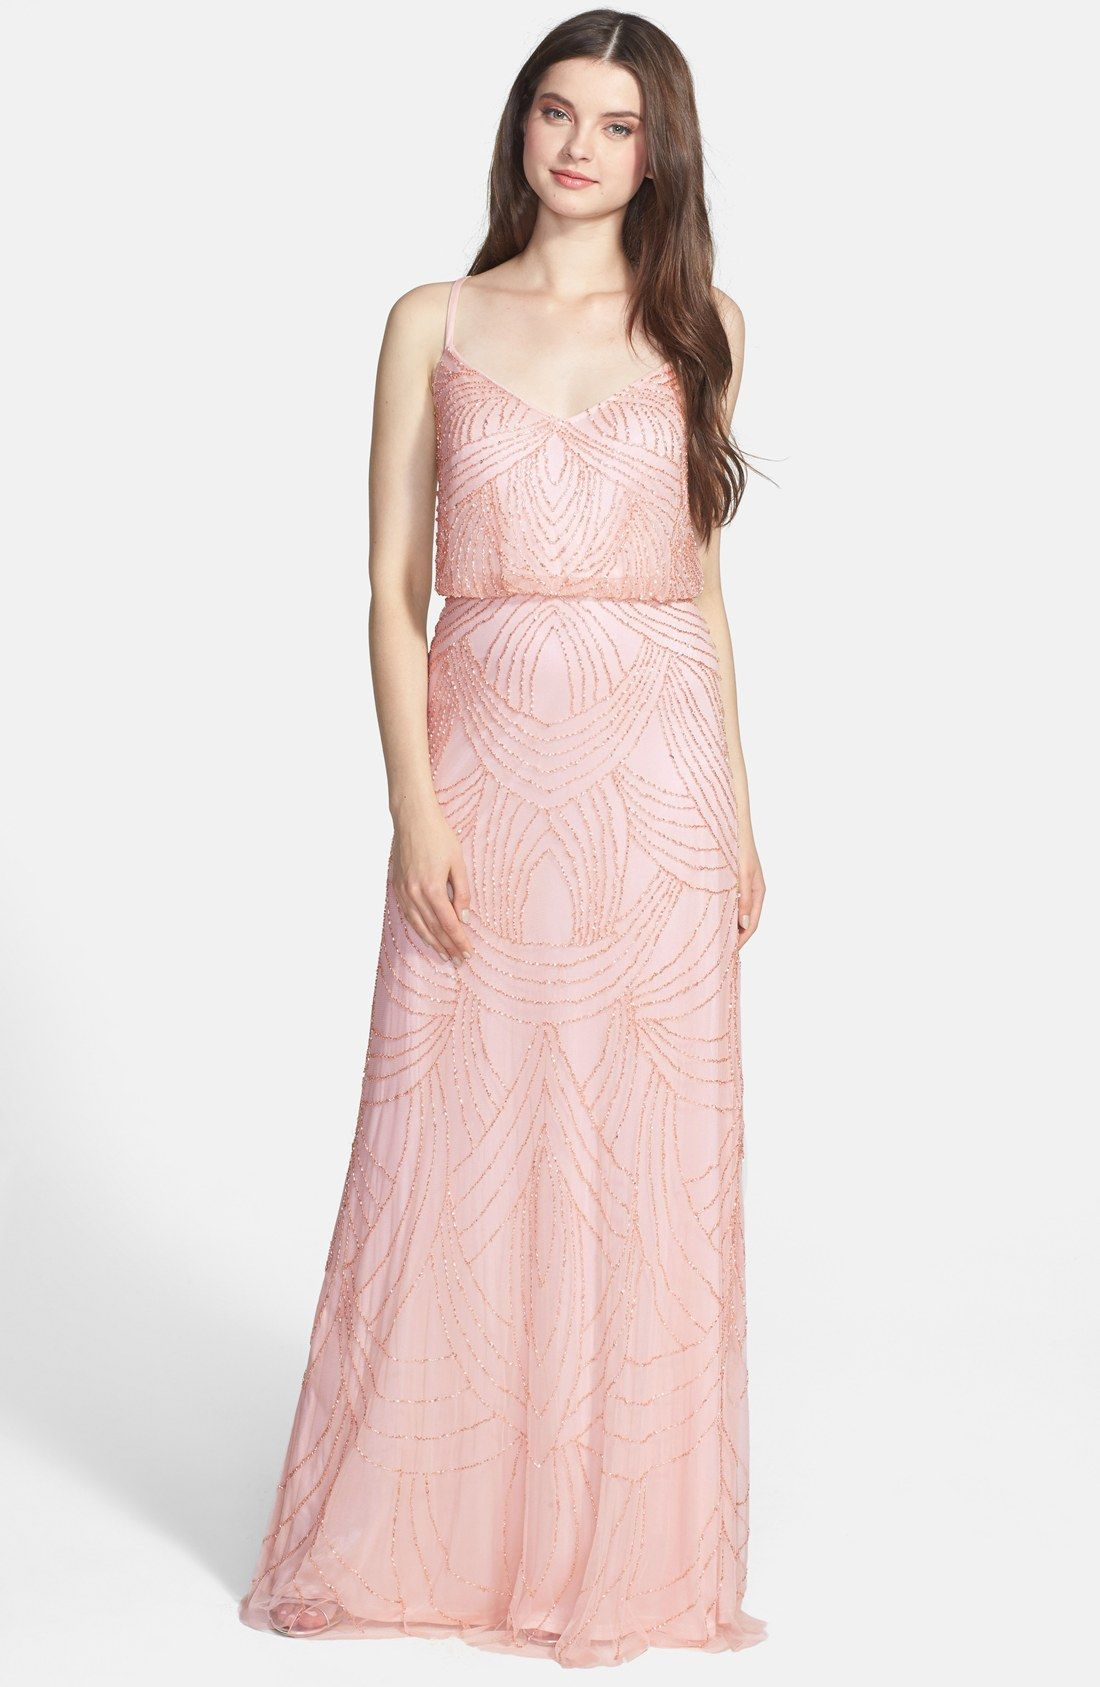 Nordstrom - Adrianna Papell Beaded Chiffon Blouson Dress $298 ...